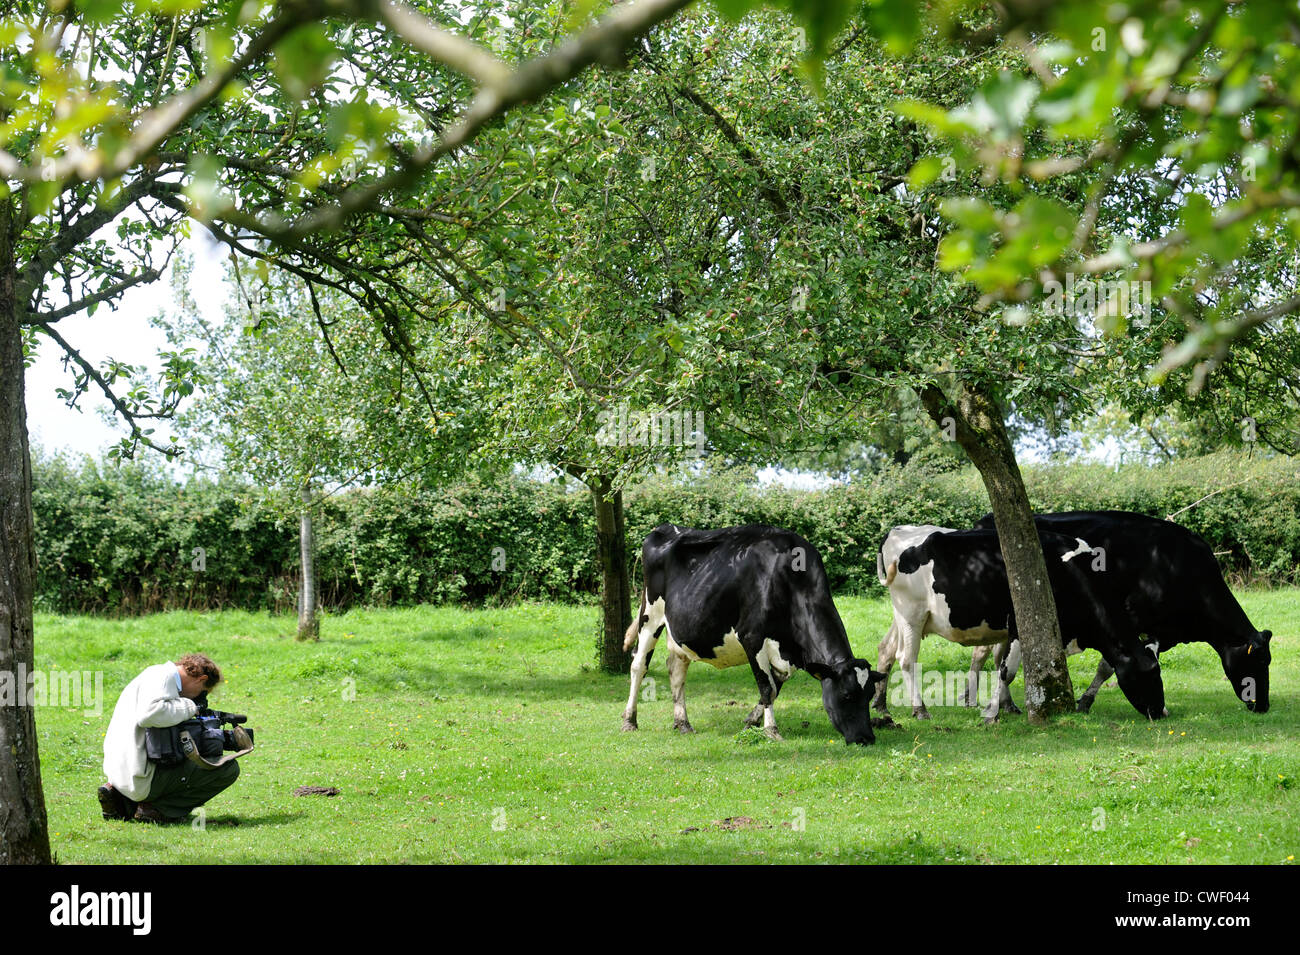 A cameraman filming friesian dairy cows grazing in an orchard, Somerset UK - Stock Image